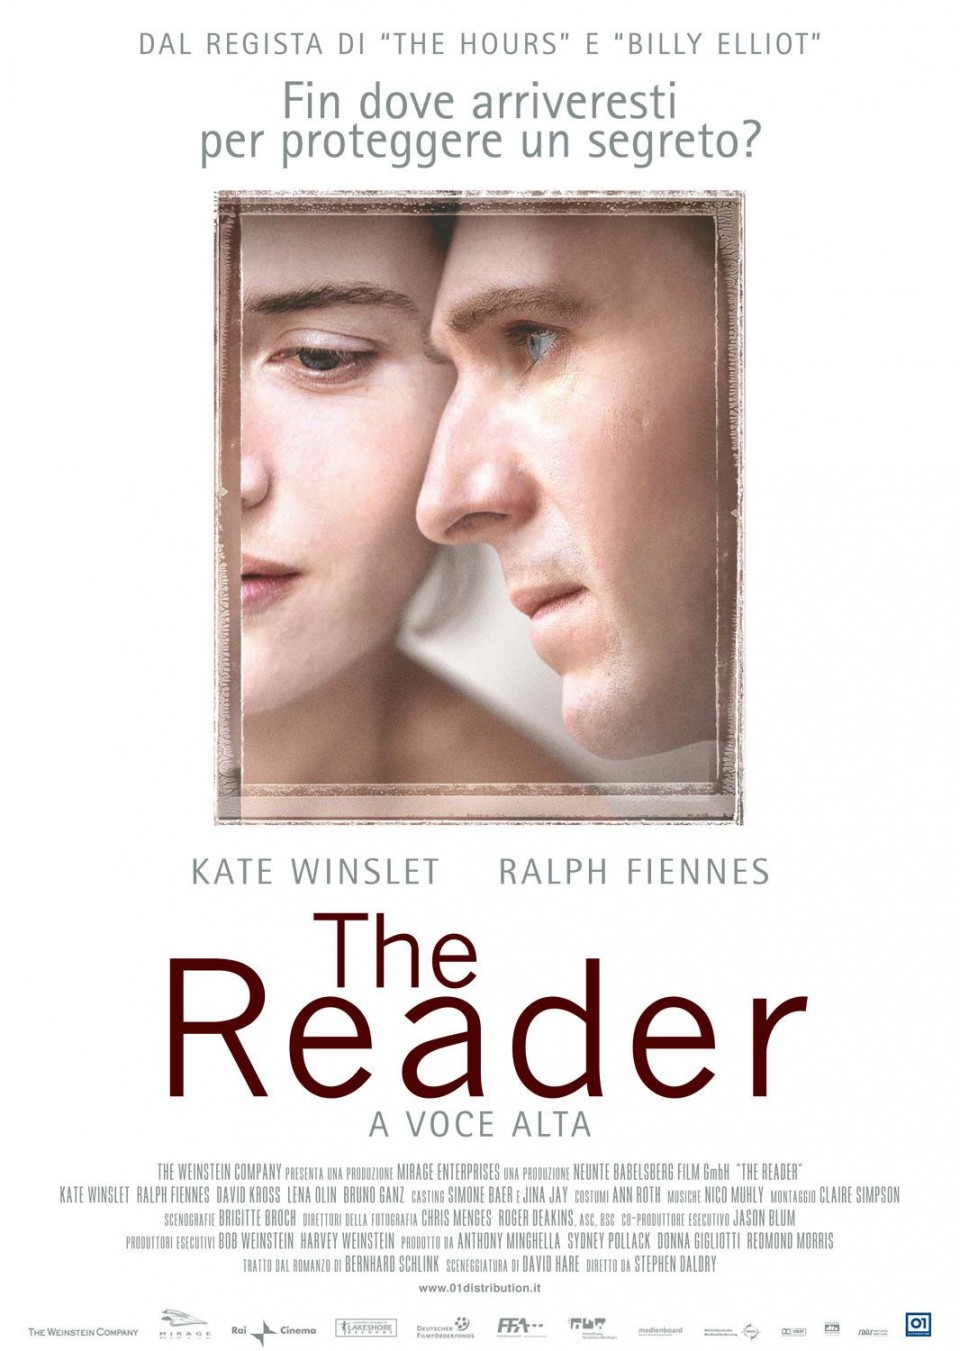 The Reader - A voce alta